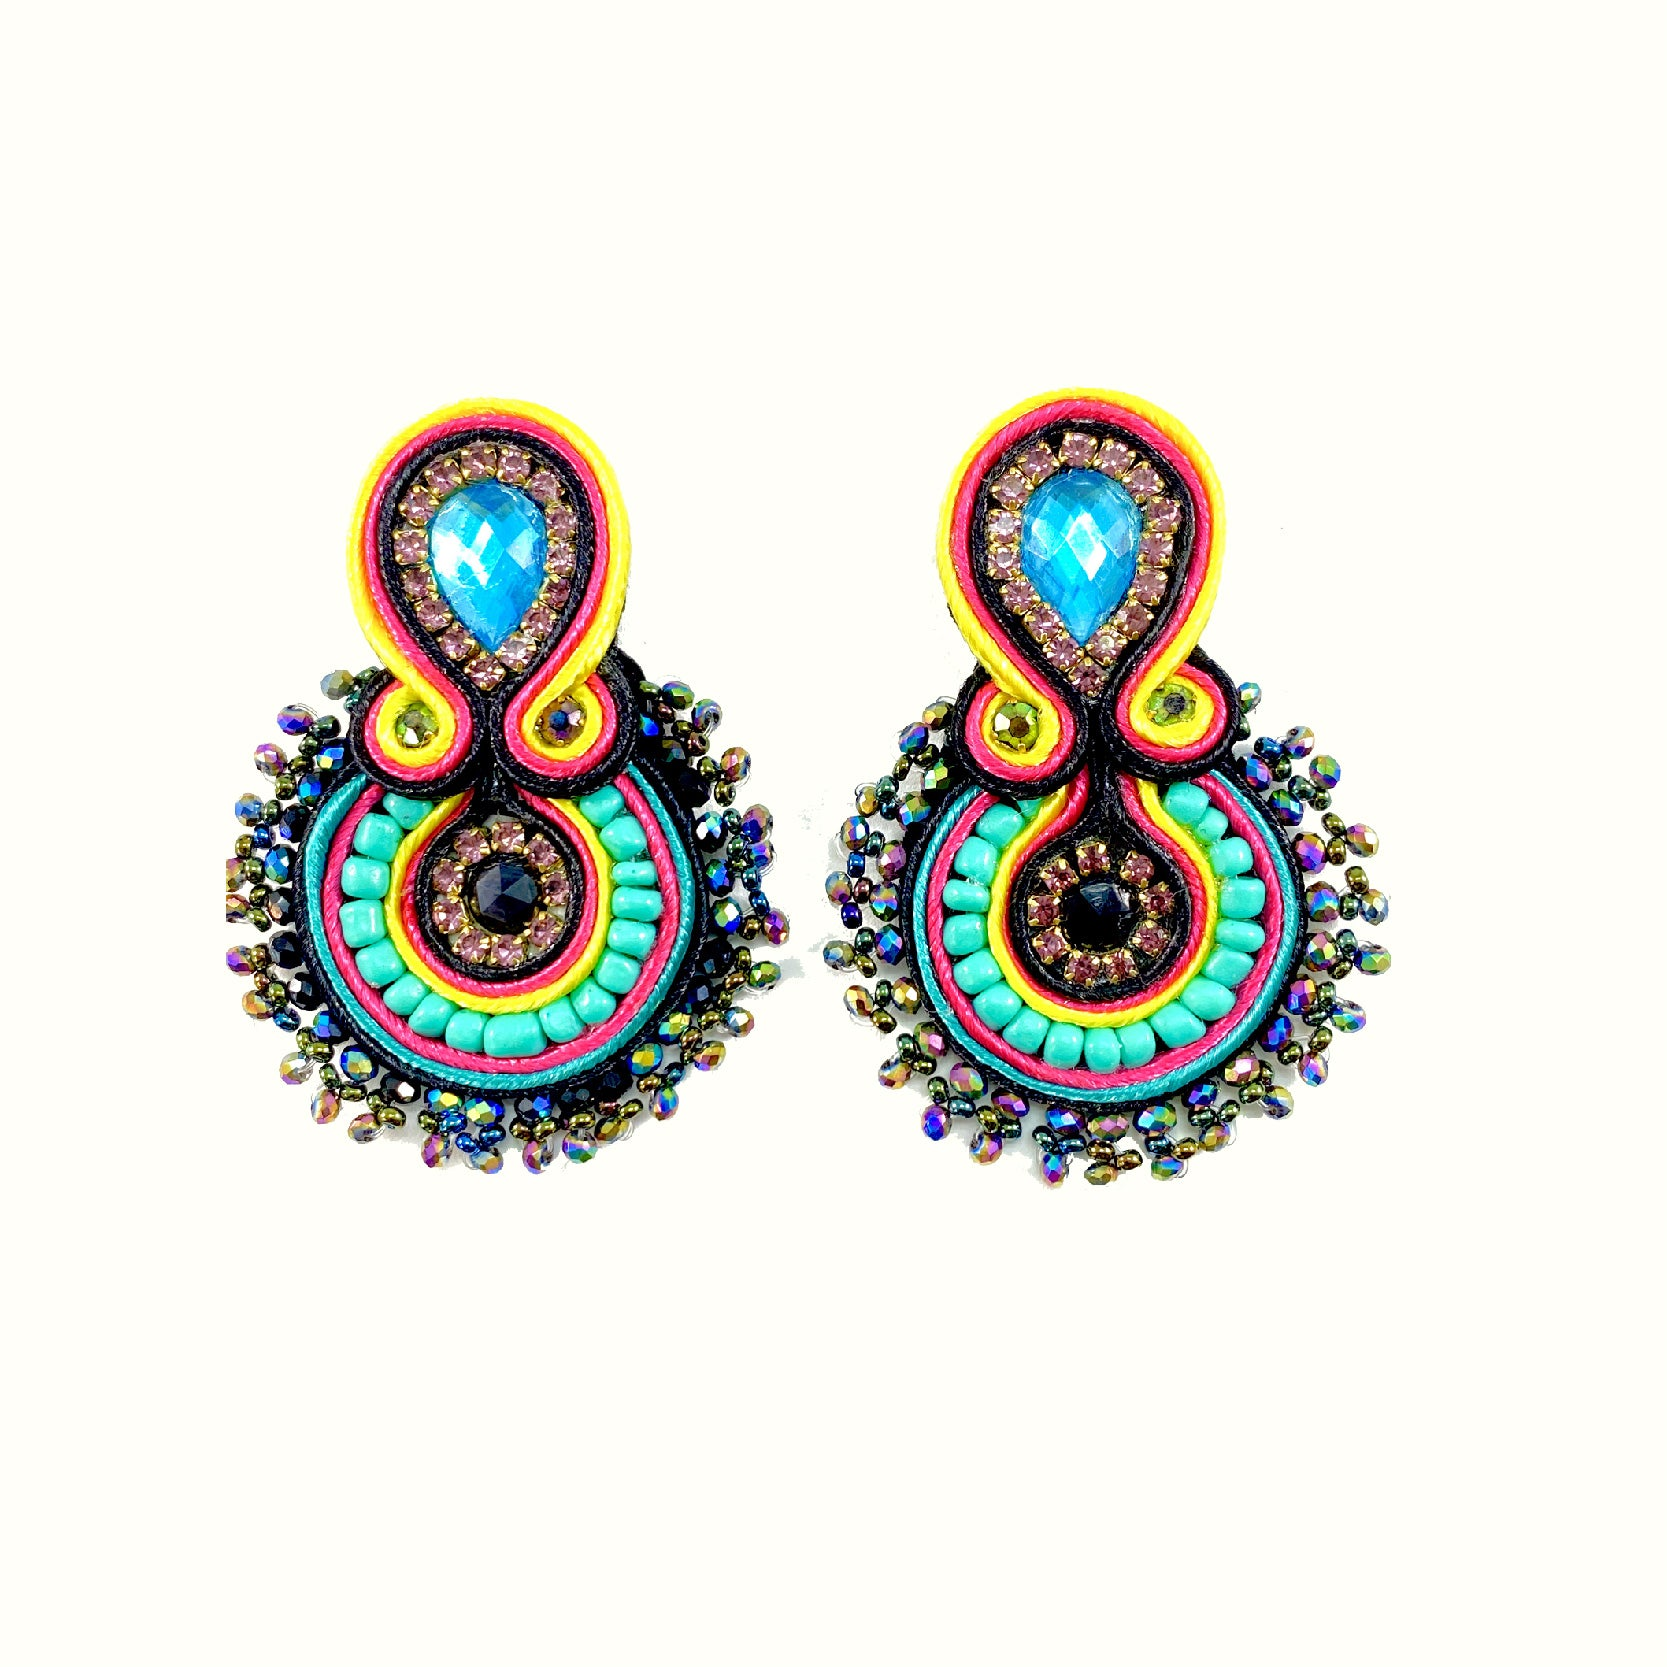 Susanna Black | Handcrafted Earrings